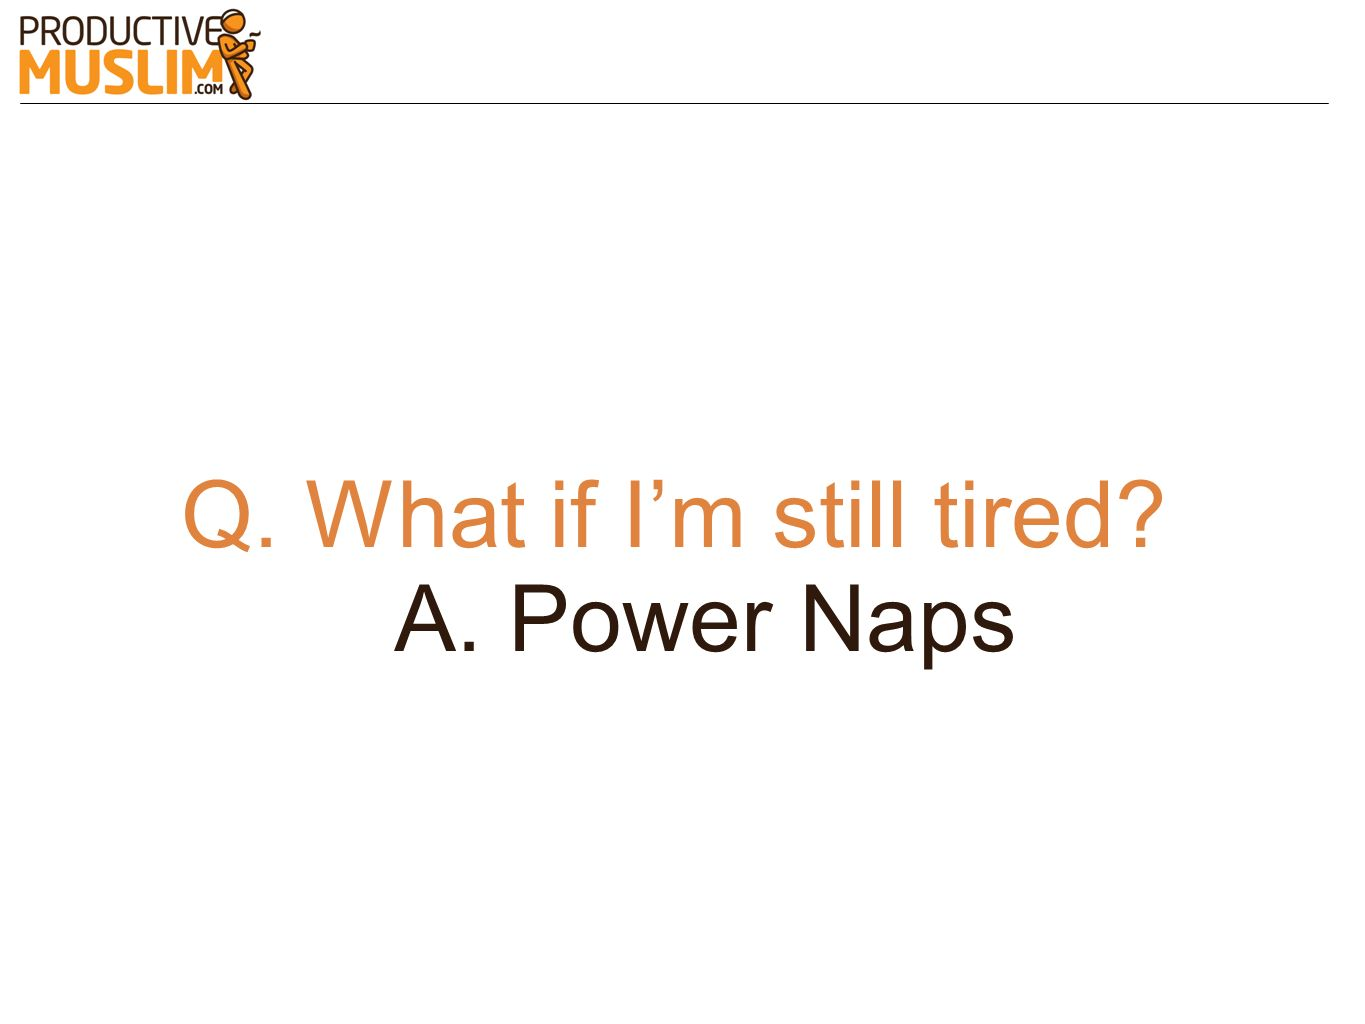 Q. What if I'm still tired